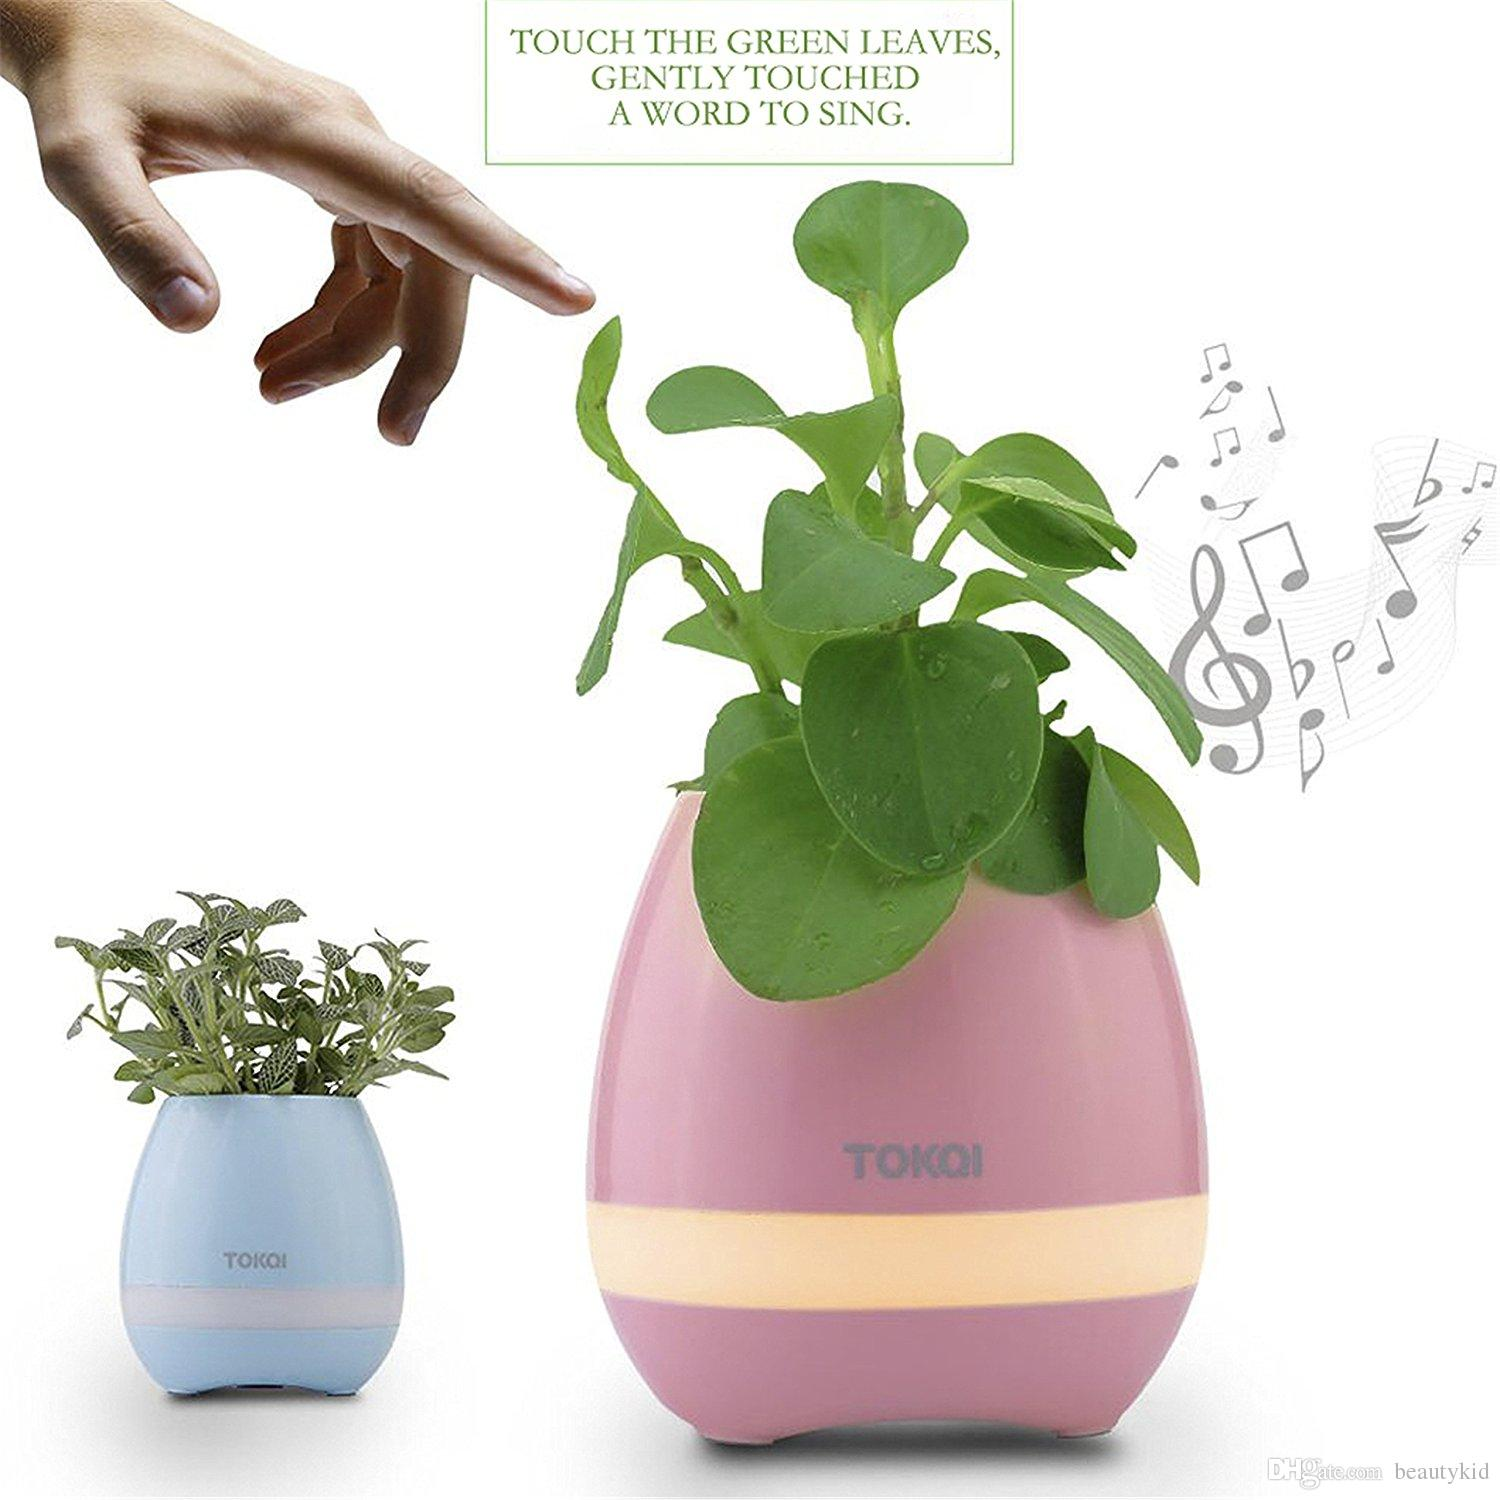 Musique Plant Lampe Smart Flower Pots Rechargeable Étanche Bluetooth haut-parleur Sans fil Smart Touch Plant Piano Musique Night Light Pot HFB001